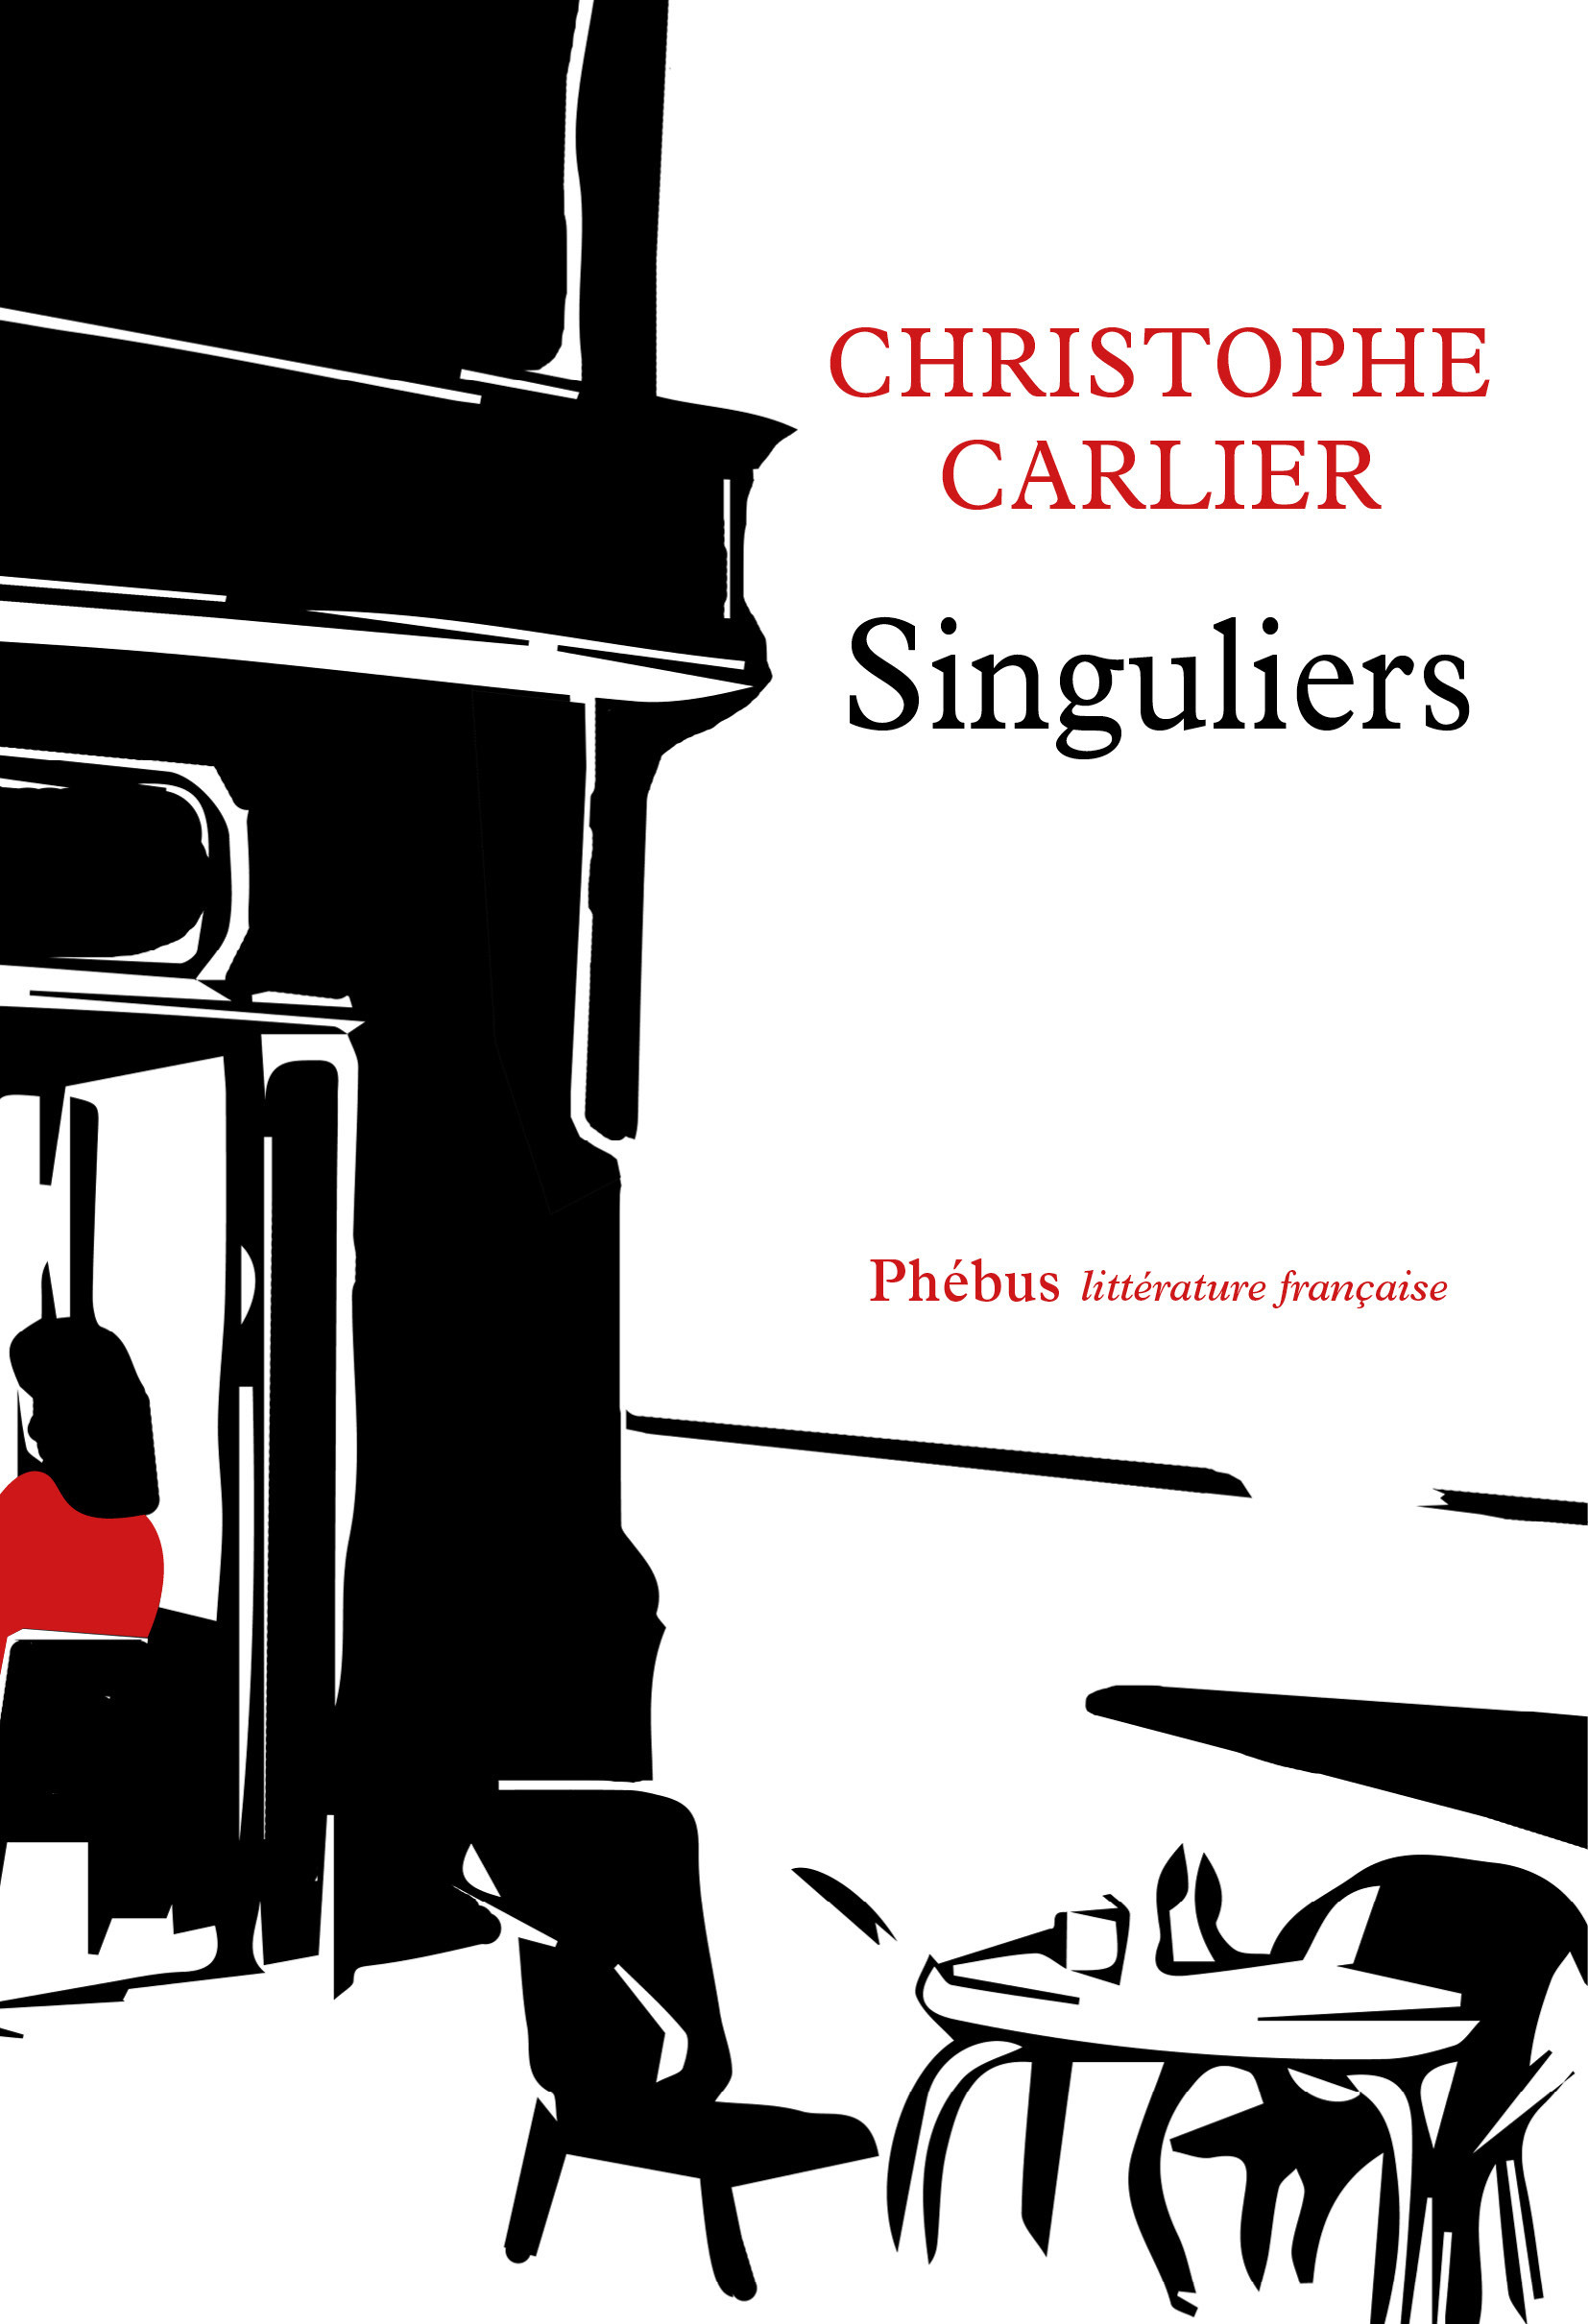 Christophe Carlier Singuliers